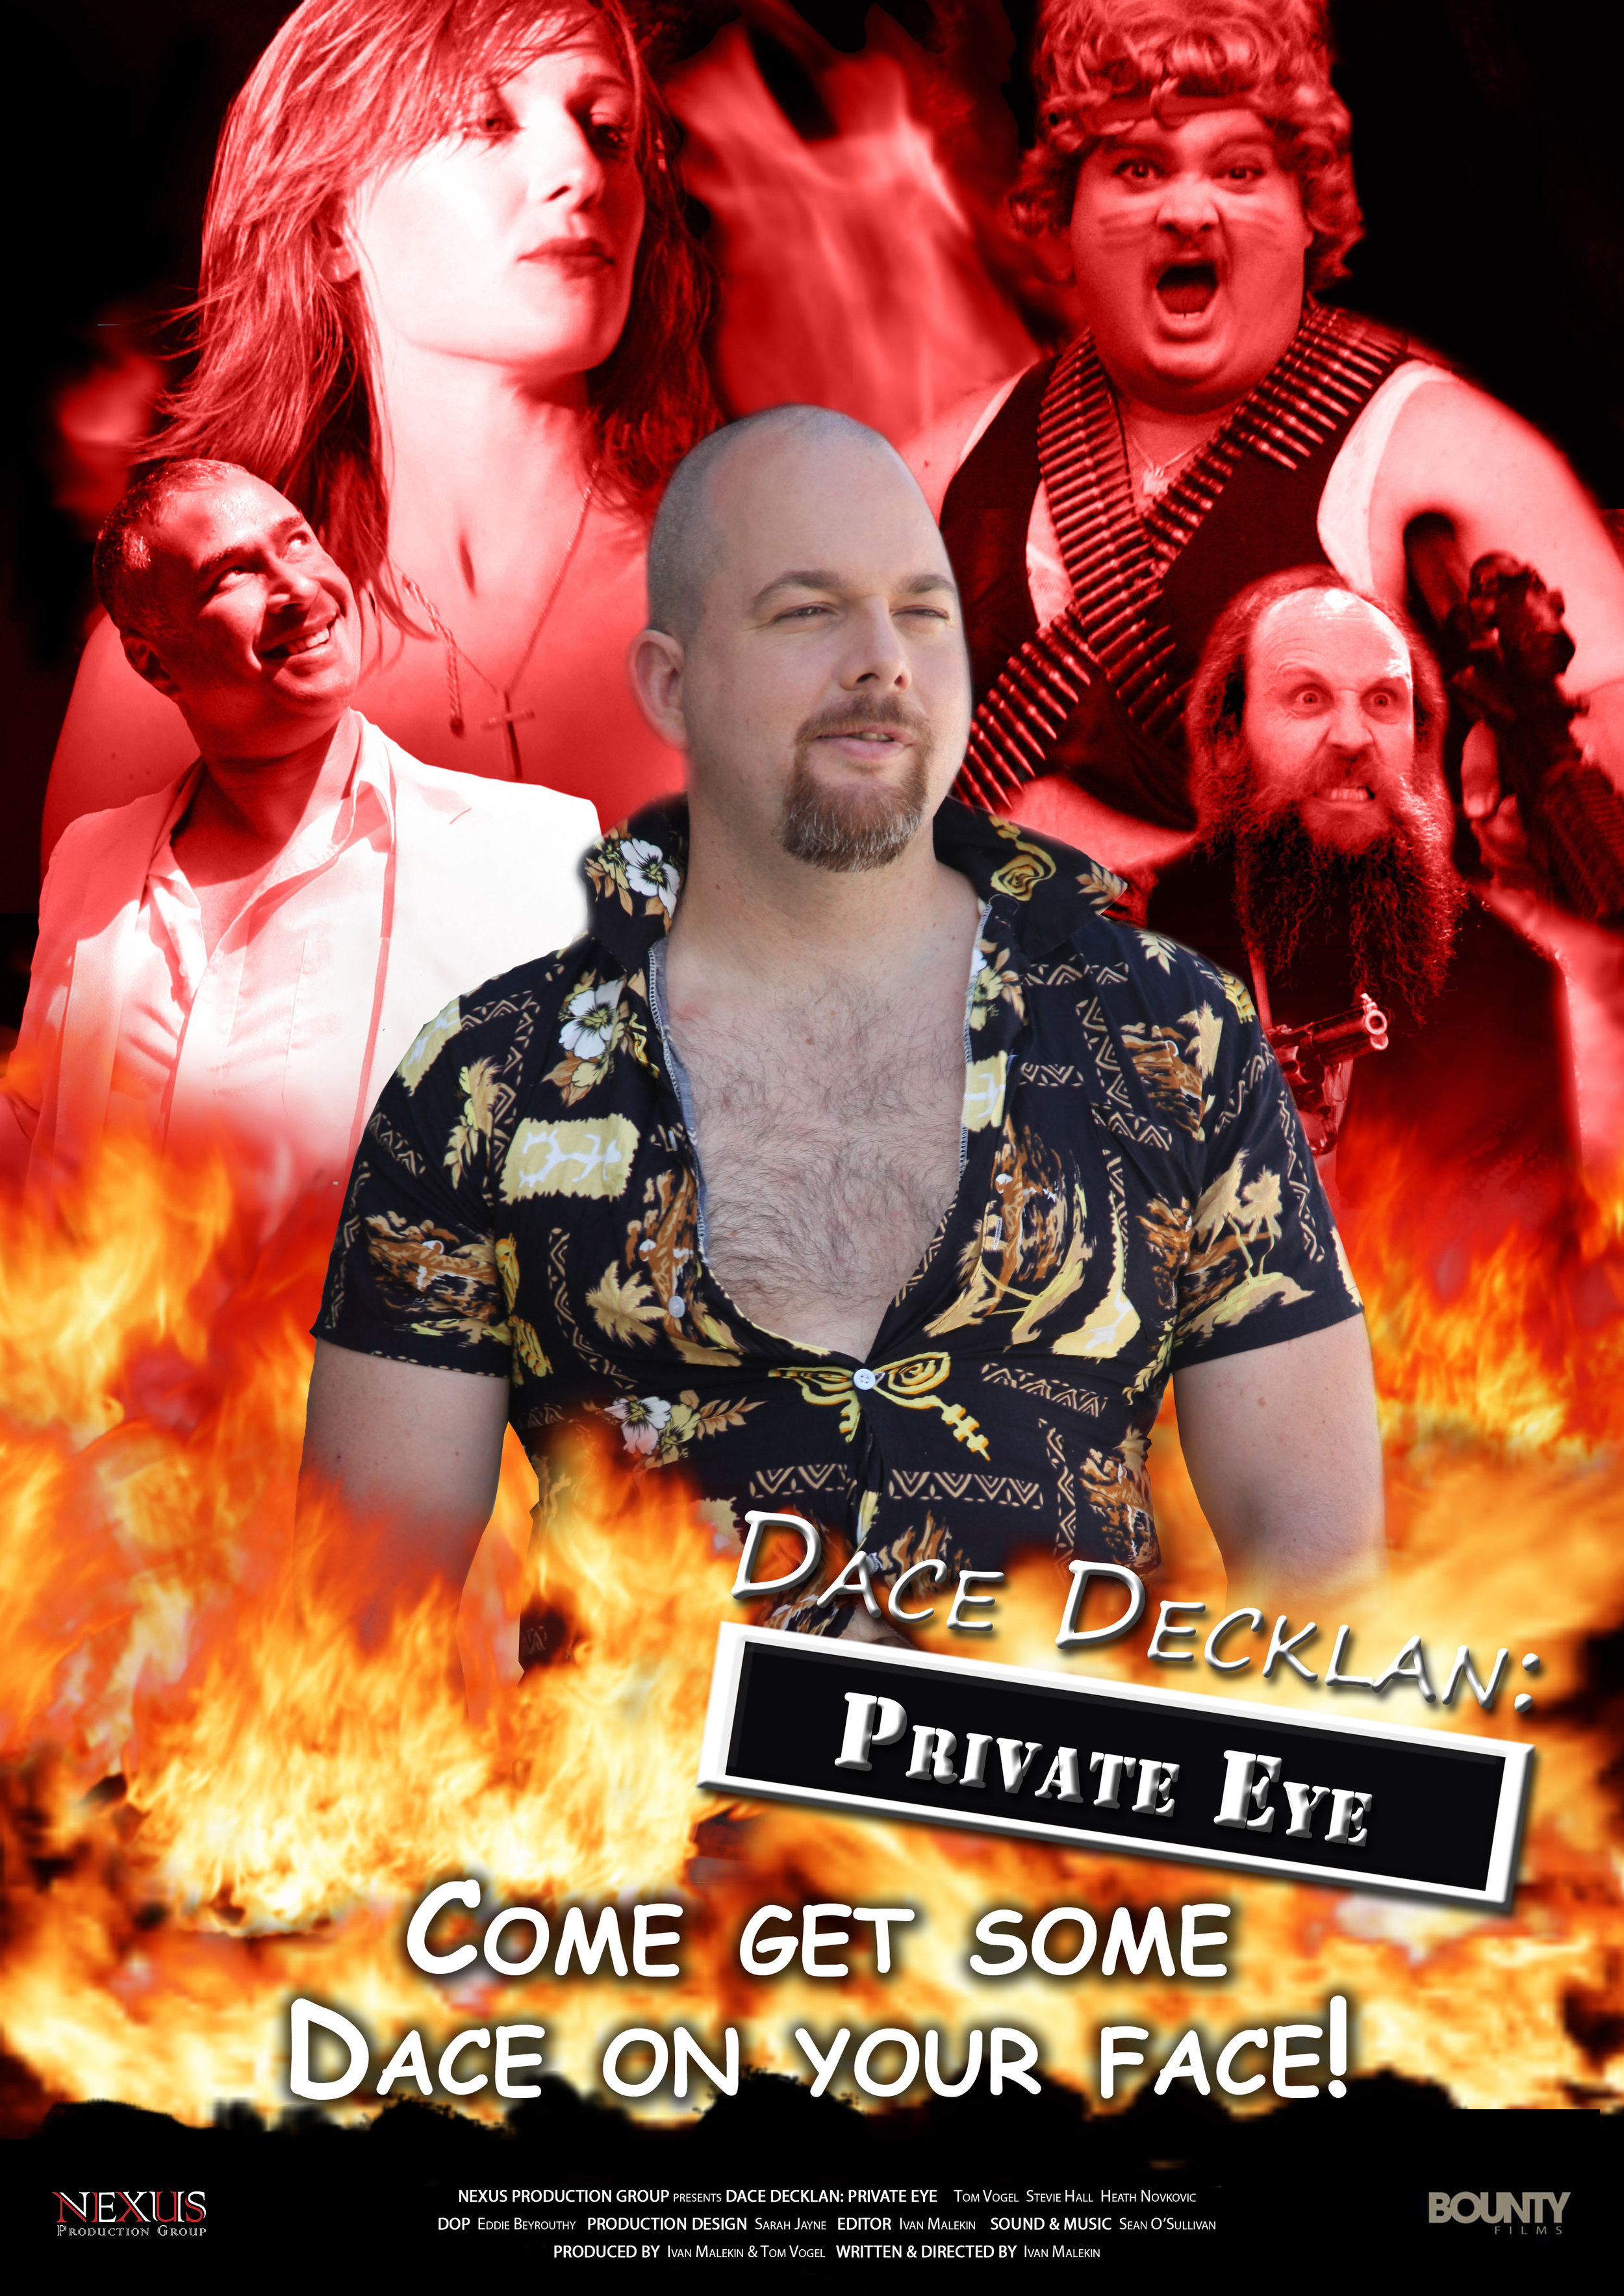 Dace is on the case!Uncensored. Unrestrained. Unleashed! - Oozing with love and lust and a whole lot of blood, and full of animation, absurdity, and comic style violence, Dace Decklan: Private Eye is an out of control, politically incorrect romp.